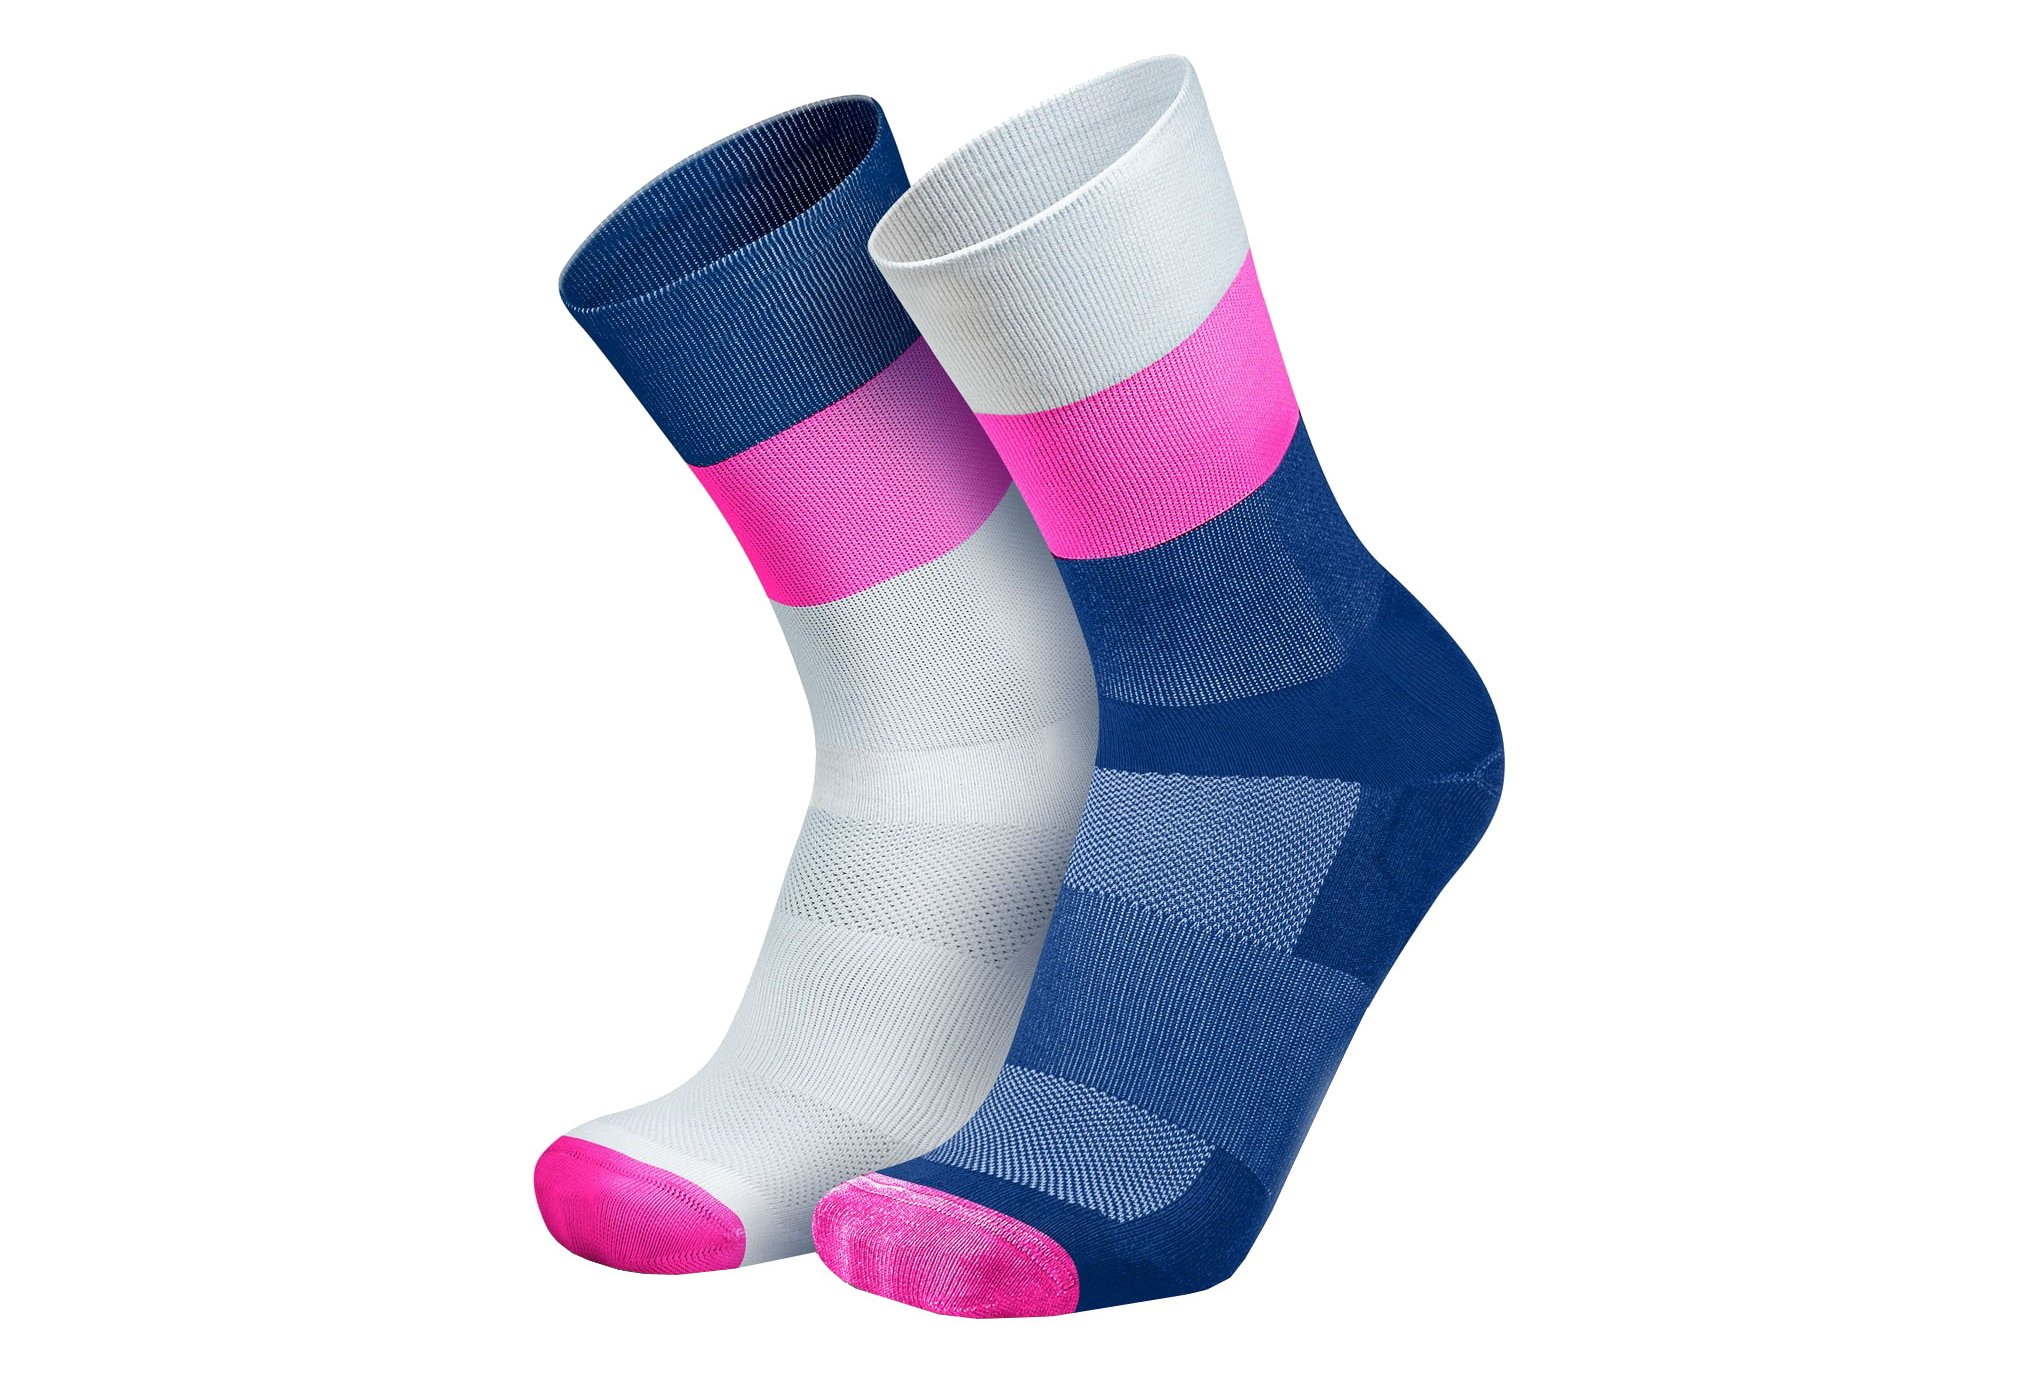 INCYLENCE Mirrored Chaussettes